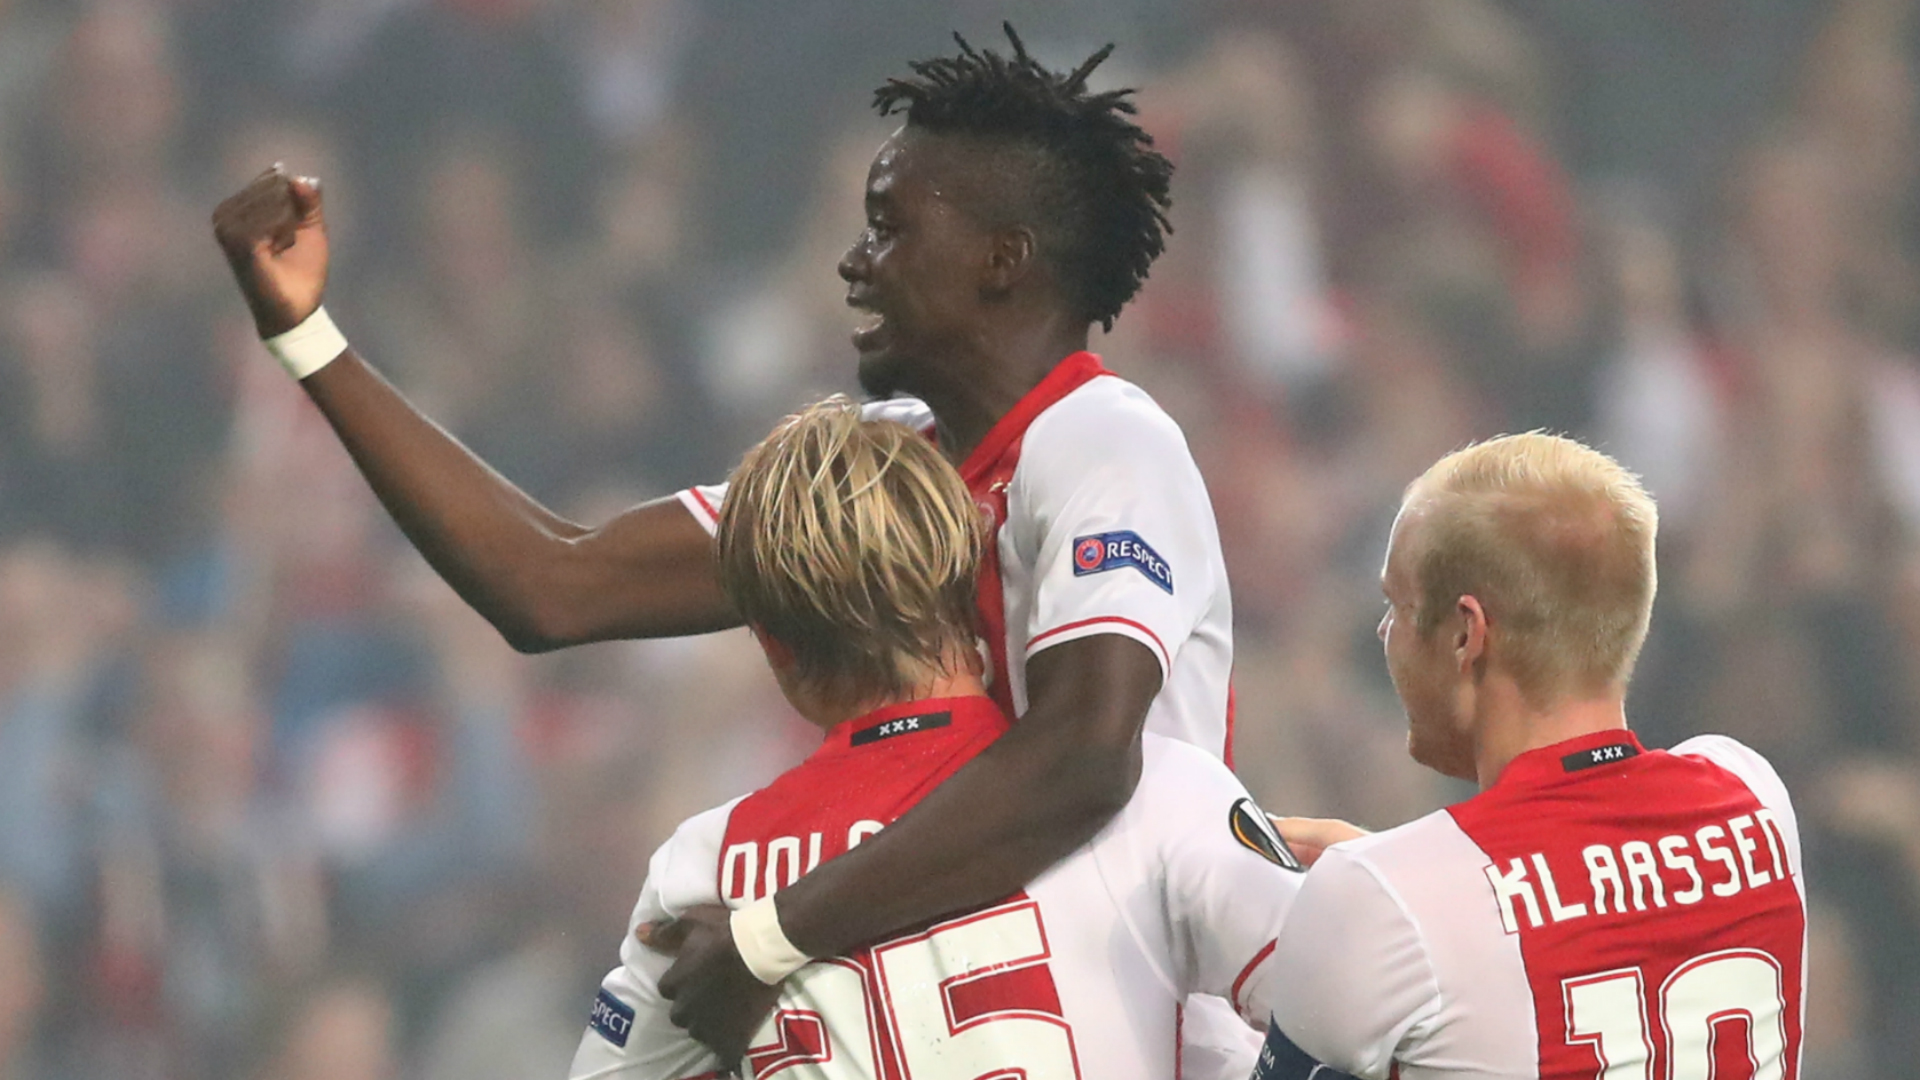 Traore managed nine goals for the squad in the Eredisivie and was part of the squad that made it all the way to final of the Europa League.